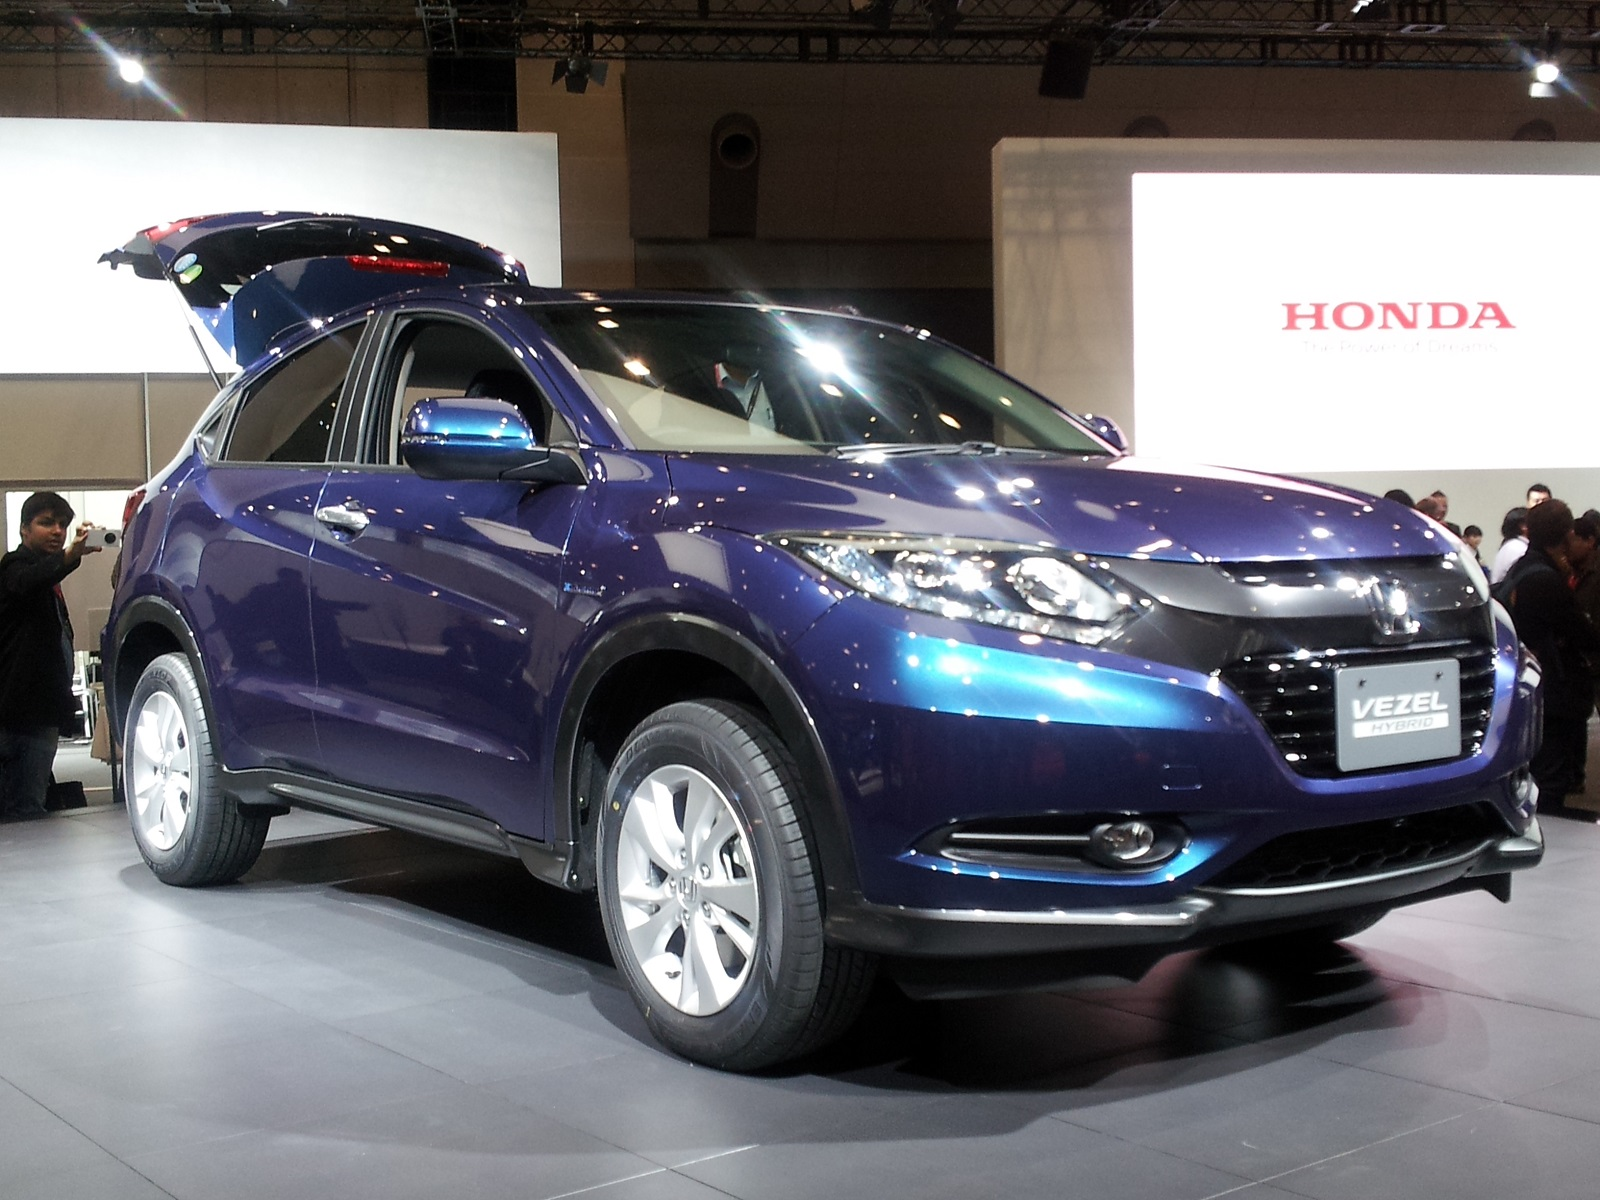 Types Of Oil For Cars >> Honda Fit-Based Crossover To Spawn Small Acura Luxury Utility?